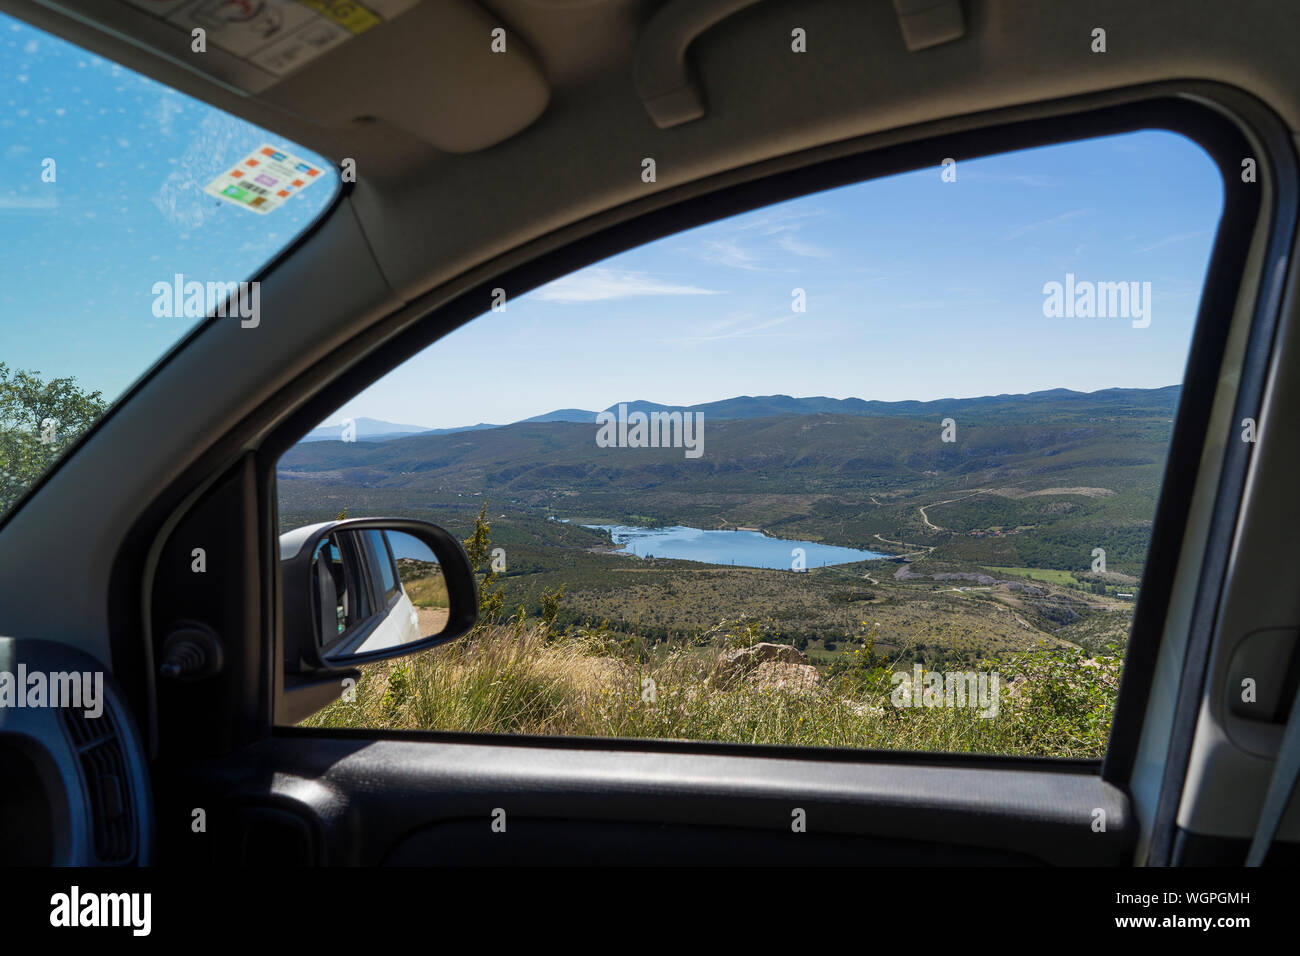 Taken From Inside The Car High Resolution Stock Photography And Images Alamy